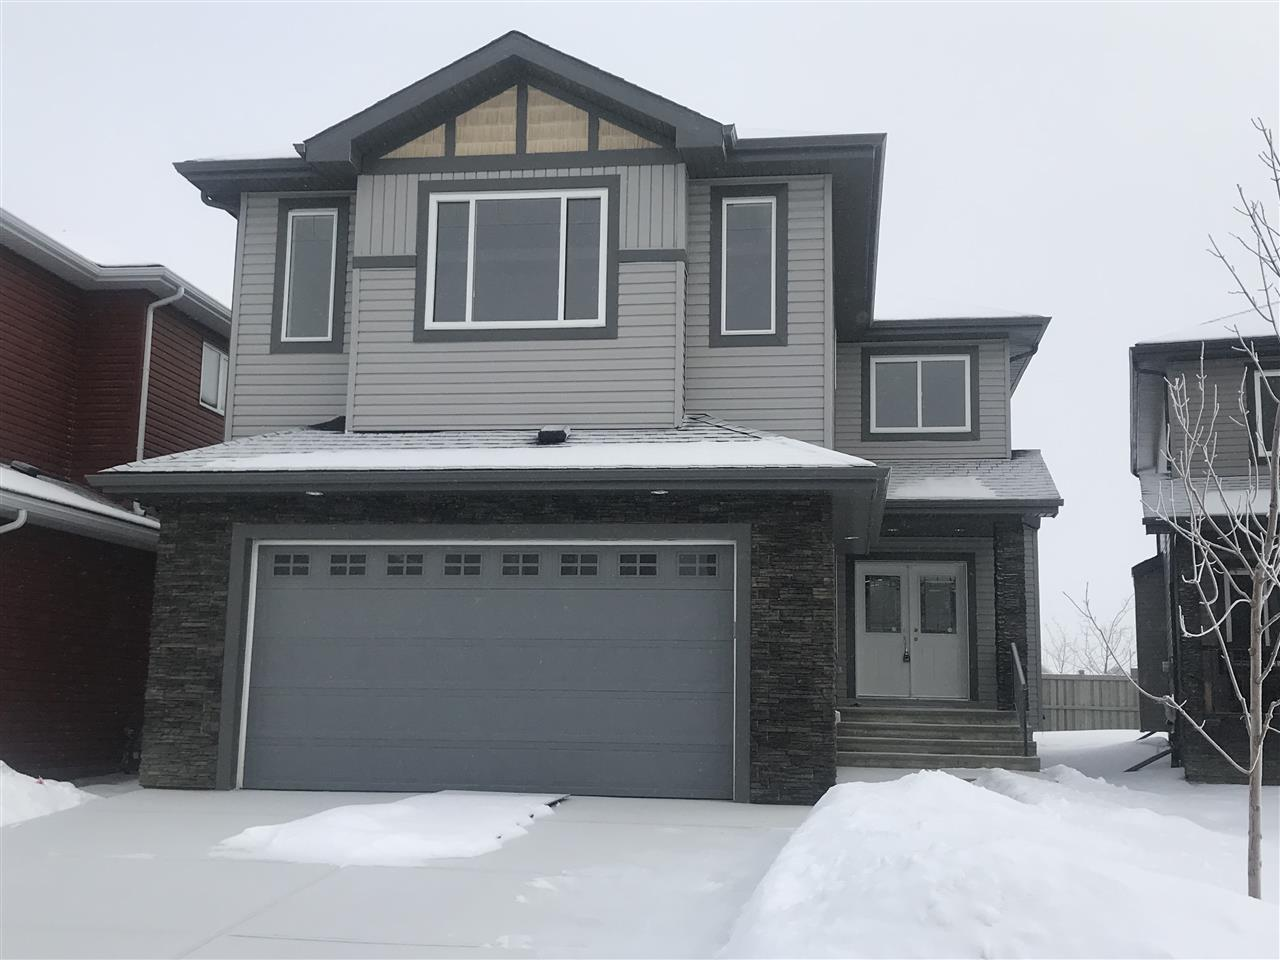 Stunning 2 Storey HOME in CREELWOOD CHAPPELLE! 2485 SQ FT BRAND NEW HOME WITH 3 BEDROOMS AND 3 FULL BATHROOMS. Welcoming you into this home is a set of DOUBLE DOORS and a very open Foyer. The main level offers Hardwood and Tile throughout. The Living Room boasts of a GAS F/P with TILE SURROUND TO THE 18' CEILING. The KITCHEN has GRANITE CT, HUGE ISLAND, a WALK THROUGH PANTRY and UPGRADED HIGH END SS APPLIANCES. The bright and spacious Main Level DEN is ideal for a HOME OFFICE. The Dining leads to a deck accessorized with a GAS LINE for BBQ. Main floor laundry & 3 piece Bath complete the main. Upstairs has been crafted with attention to detail. Upper level offers a LARGE MASTER with luxurious Ensuite w/Dual Sinks, soaker tub, Glass Shower + Large Walk-In Closet. 2 Additional bedrooms, 4-Piece Bath, & Huge BONUS ROOM with Coffered Ceiling perfect for entertaining. The home has speakers throughout connected via a central system. Oversized garage. 9' ceilings on main and in the basement. A DEFINITE MUST SEE!!